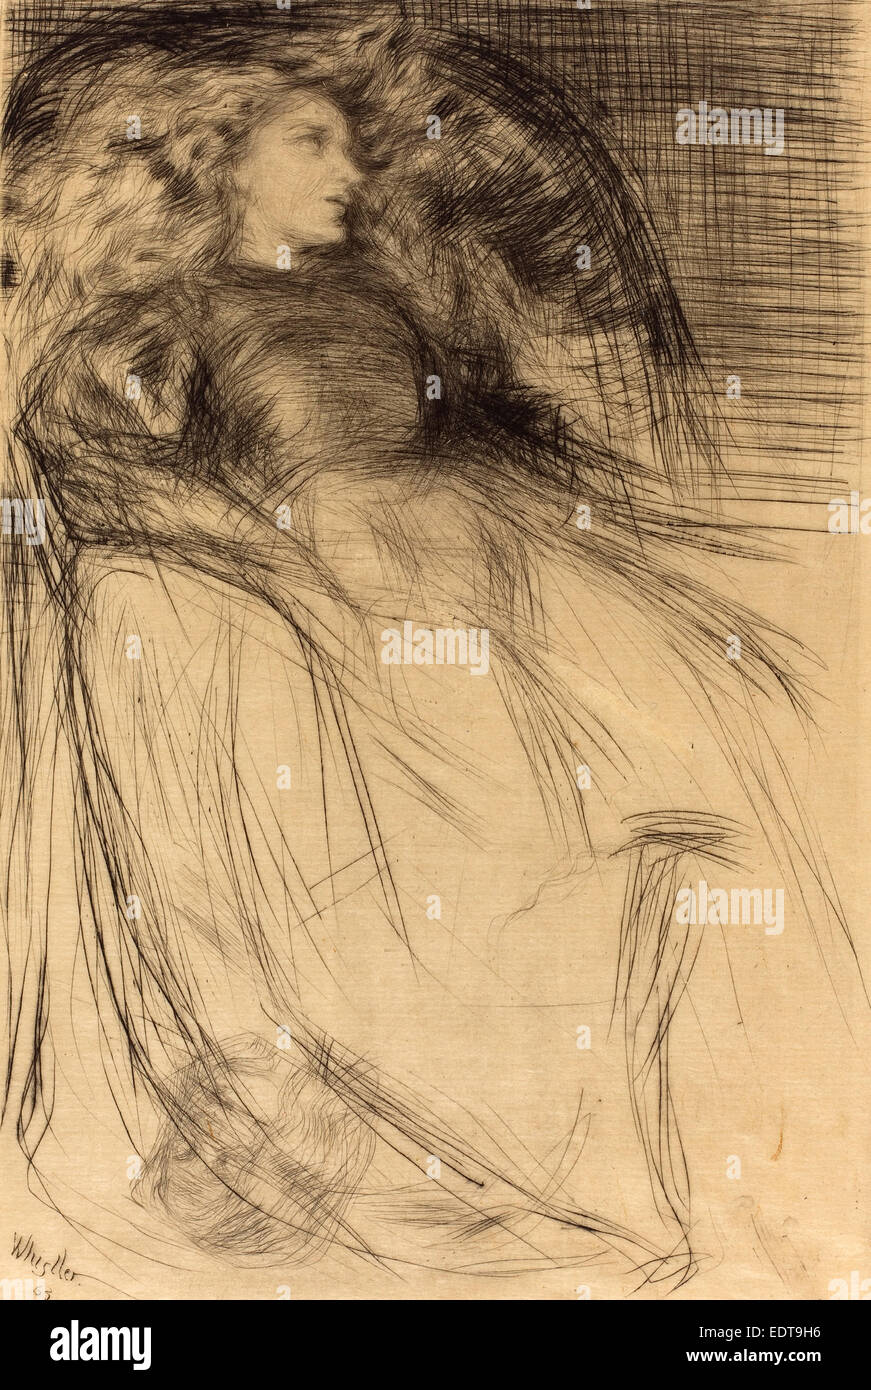 James McNeill Whistler (American, 1834 - 1903), Weary, 1863, drypoint - Stock Image